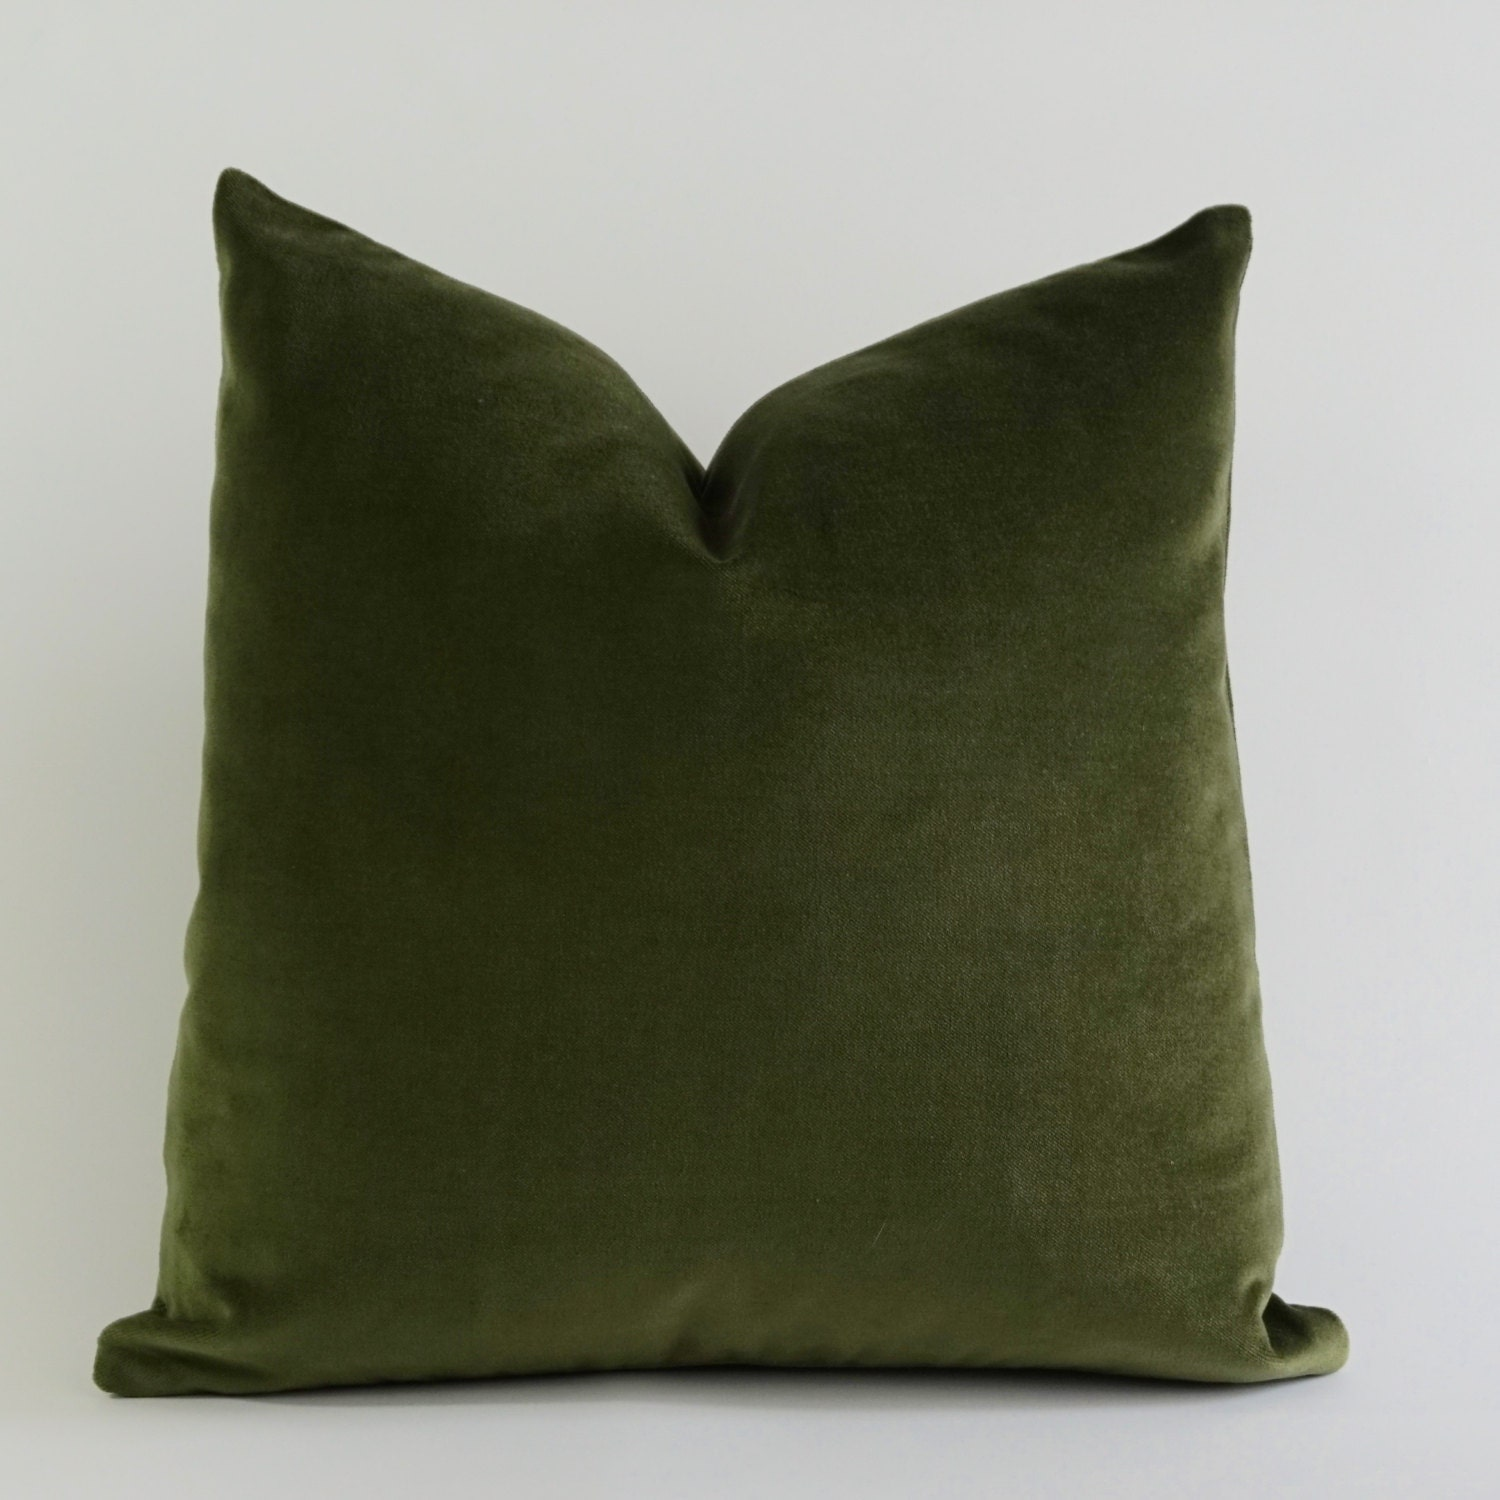 Olive Green Decorative Pillow : Olive Green Cotton Velvet Pillow Cover Decorative Accent